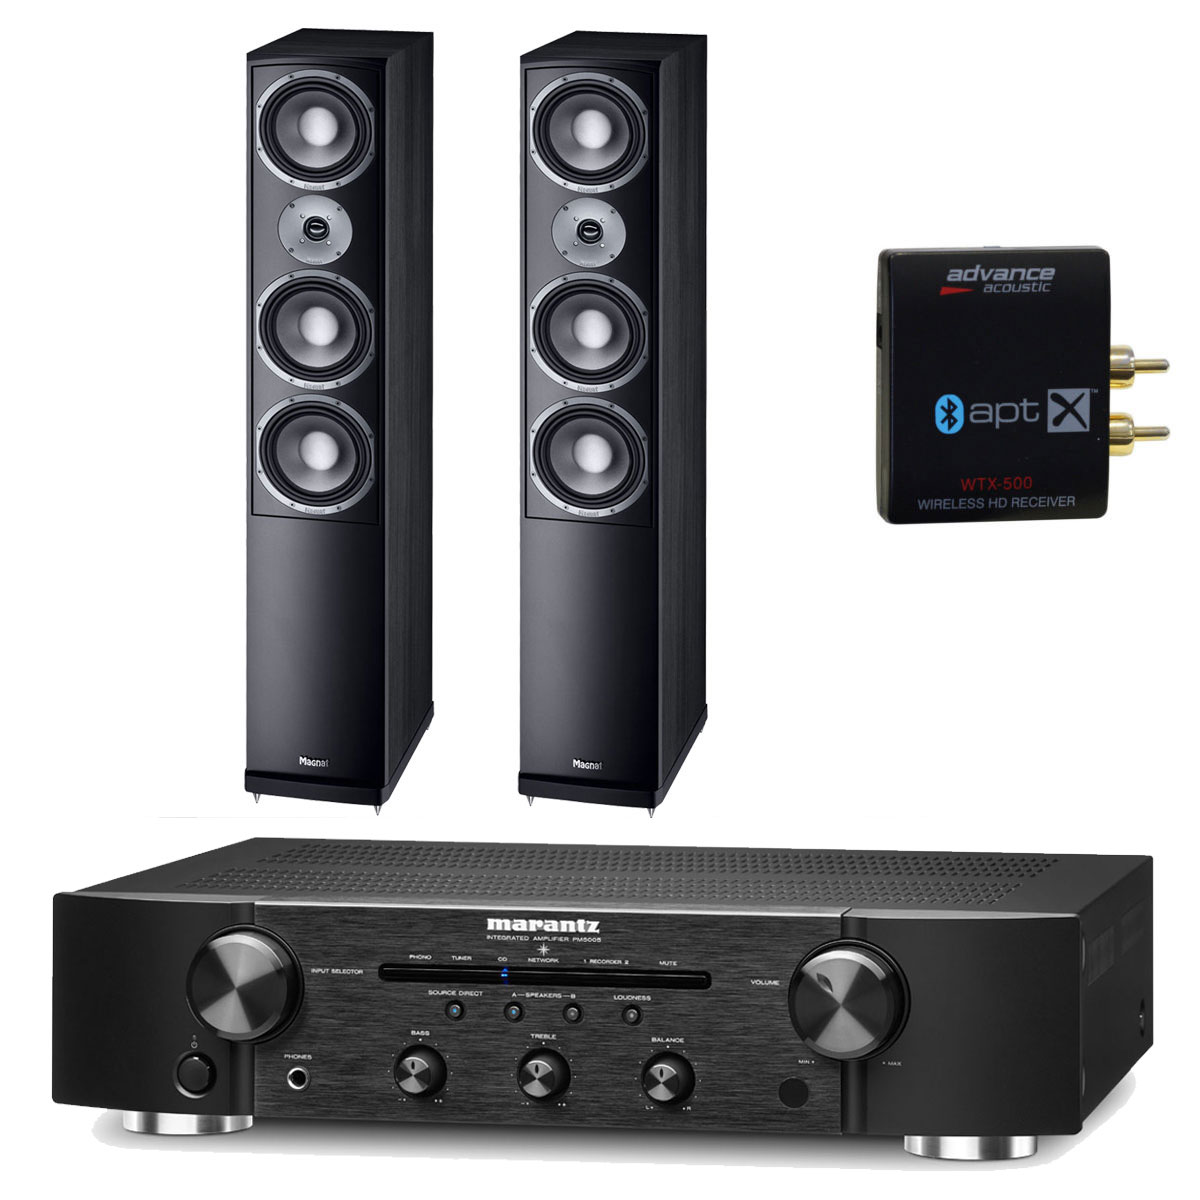 pack marantz pm5005 noir advance acoustic wtx 500 magnat vector 207 ensemble hifi marantz. Black Bedroom Furniture Sets. Home Design Ideas